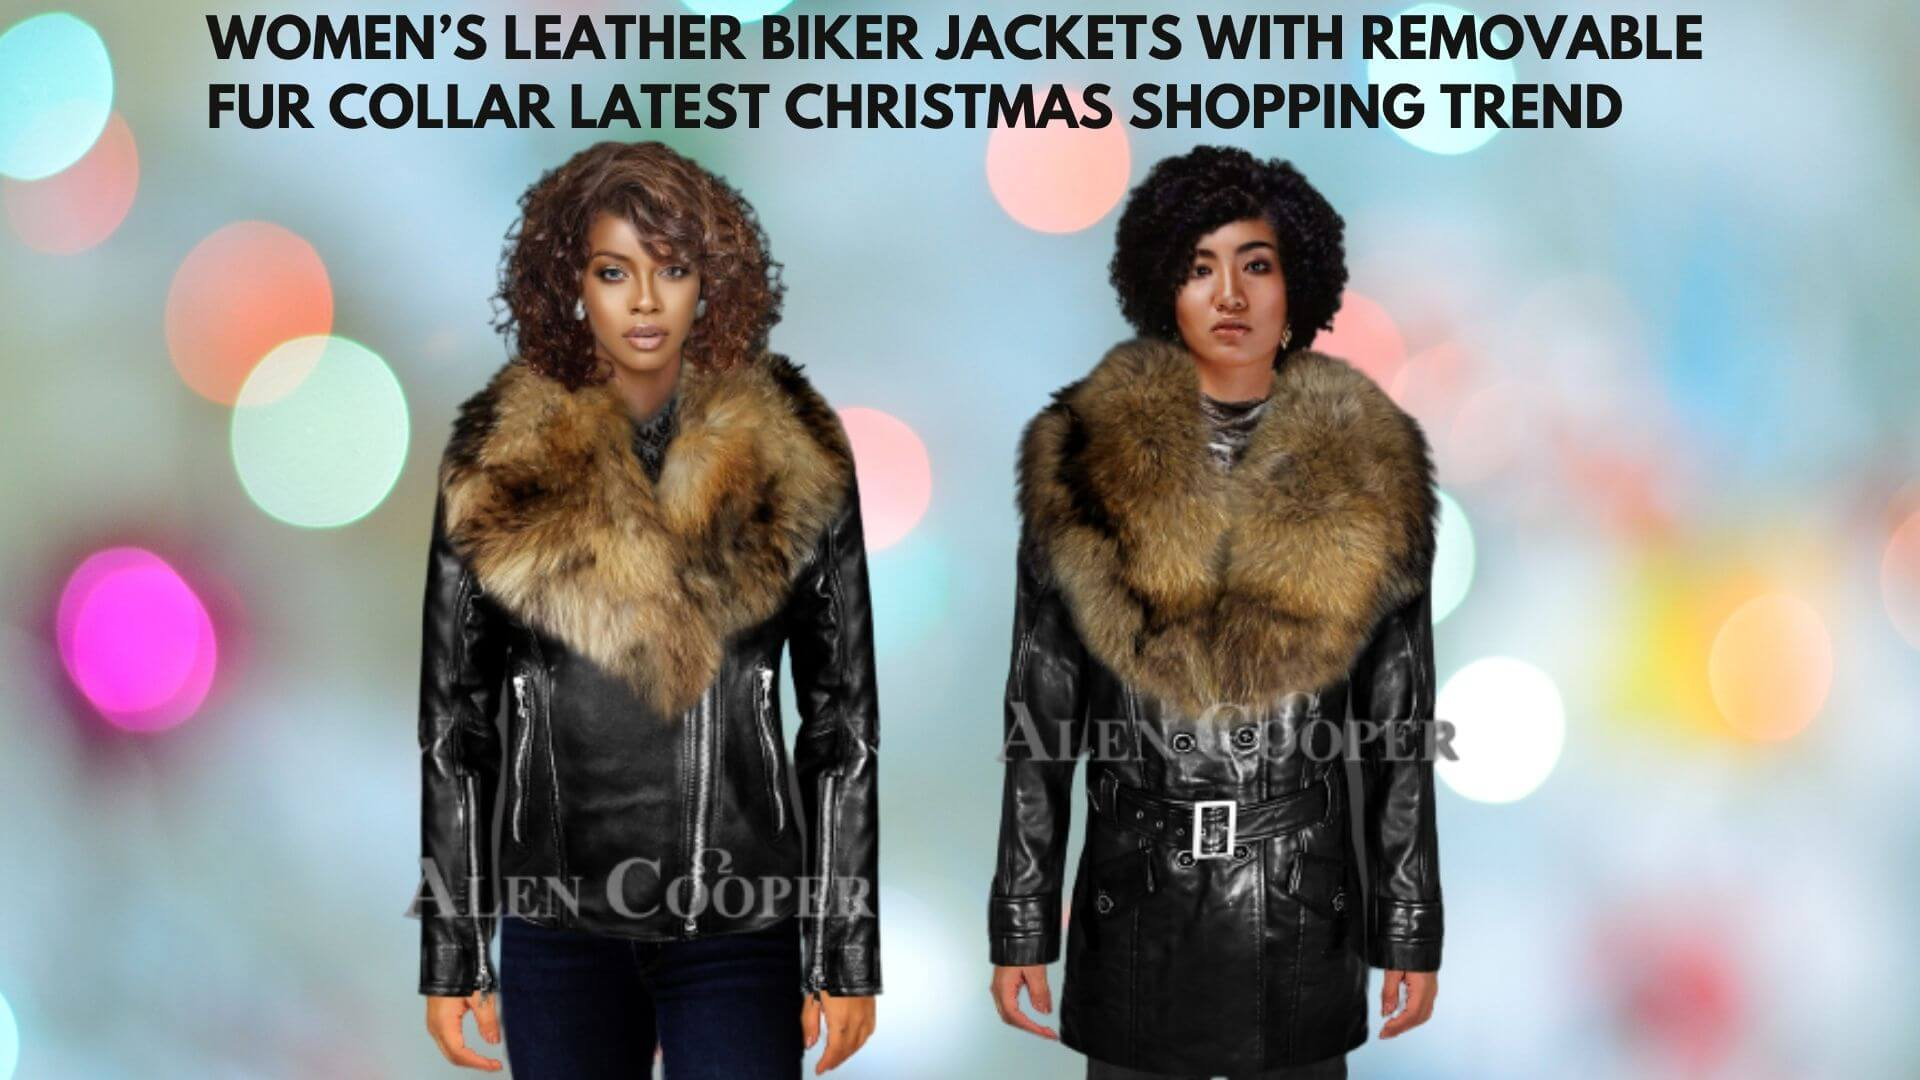 WOMENS LEATHER BIKER JACKETS WITH REMOVABLE FUR COLLAR LATEST CHRISTMAS SHOPPING TREND